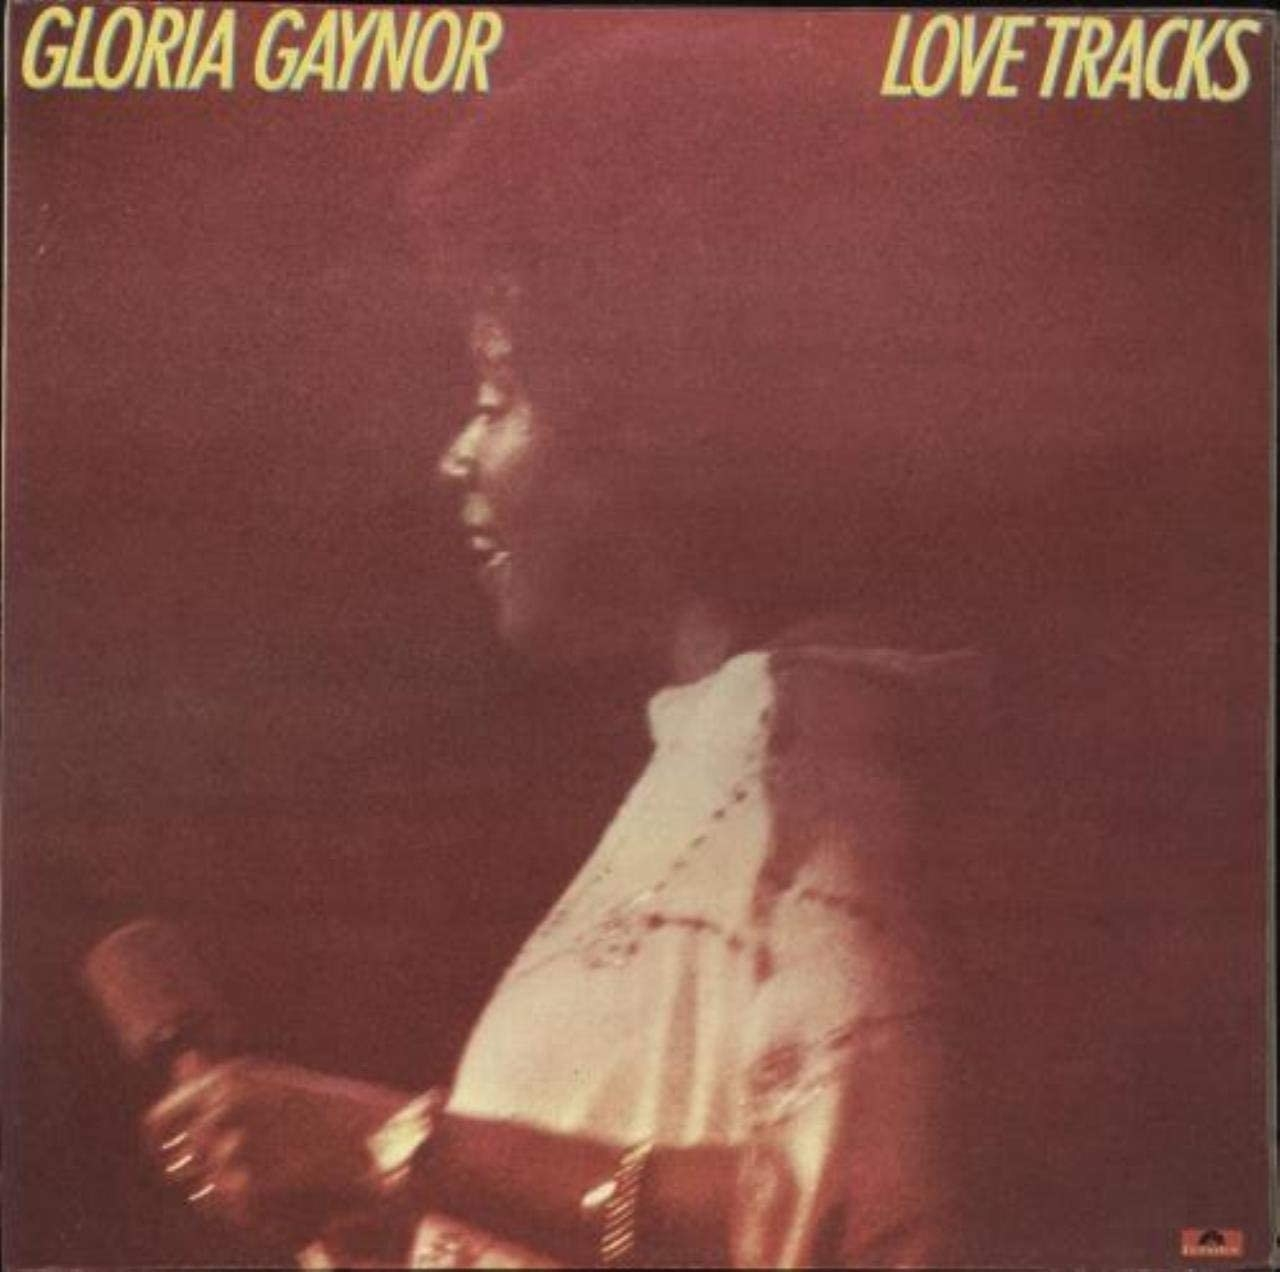 album cover of Love Tracks with Gloria Gaynor facing the side as she holds a mic